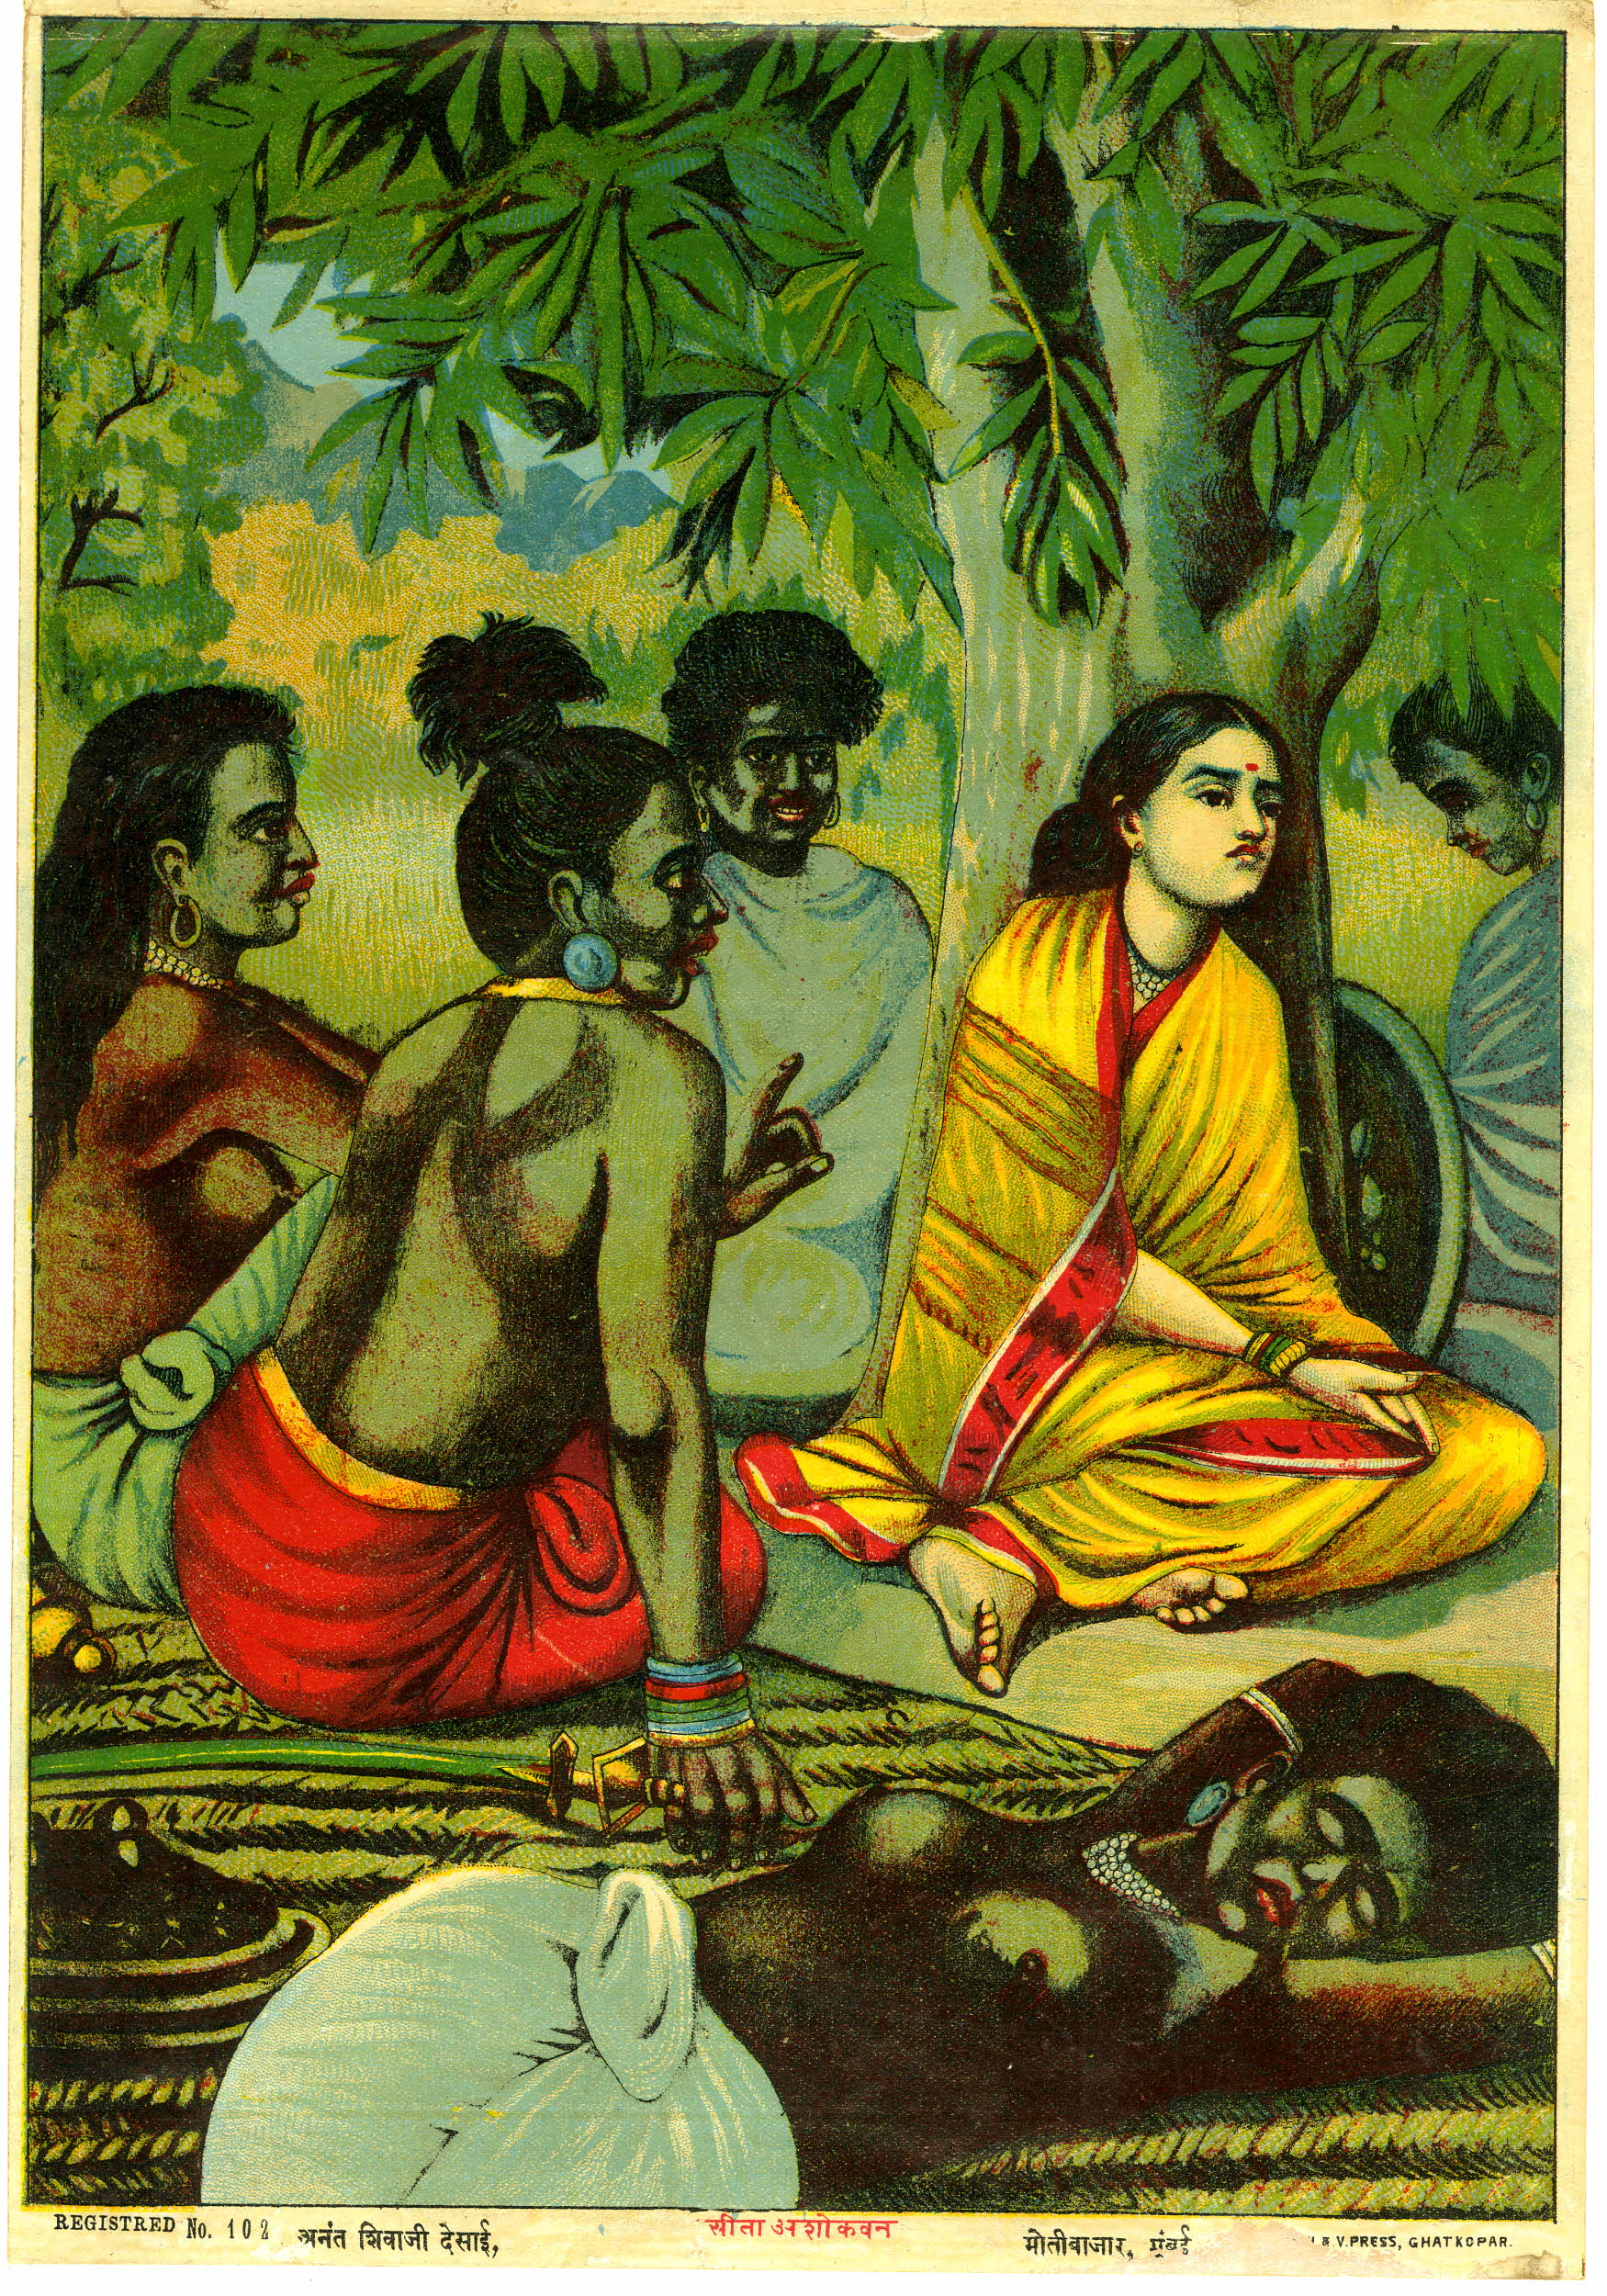 Sita Seated Beneath a Tree and Surrounded by her Captors, Scene from Ramayana, Color Lithograph, Early 20th Century